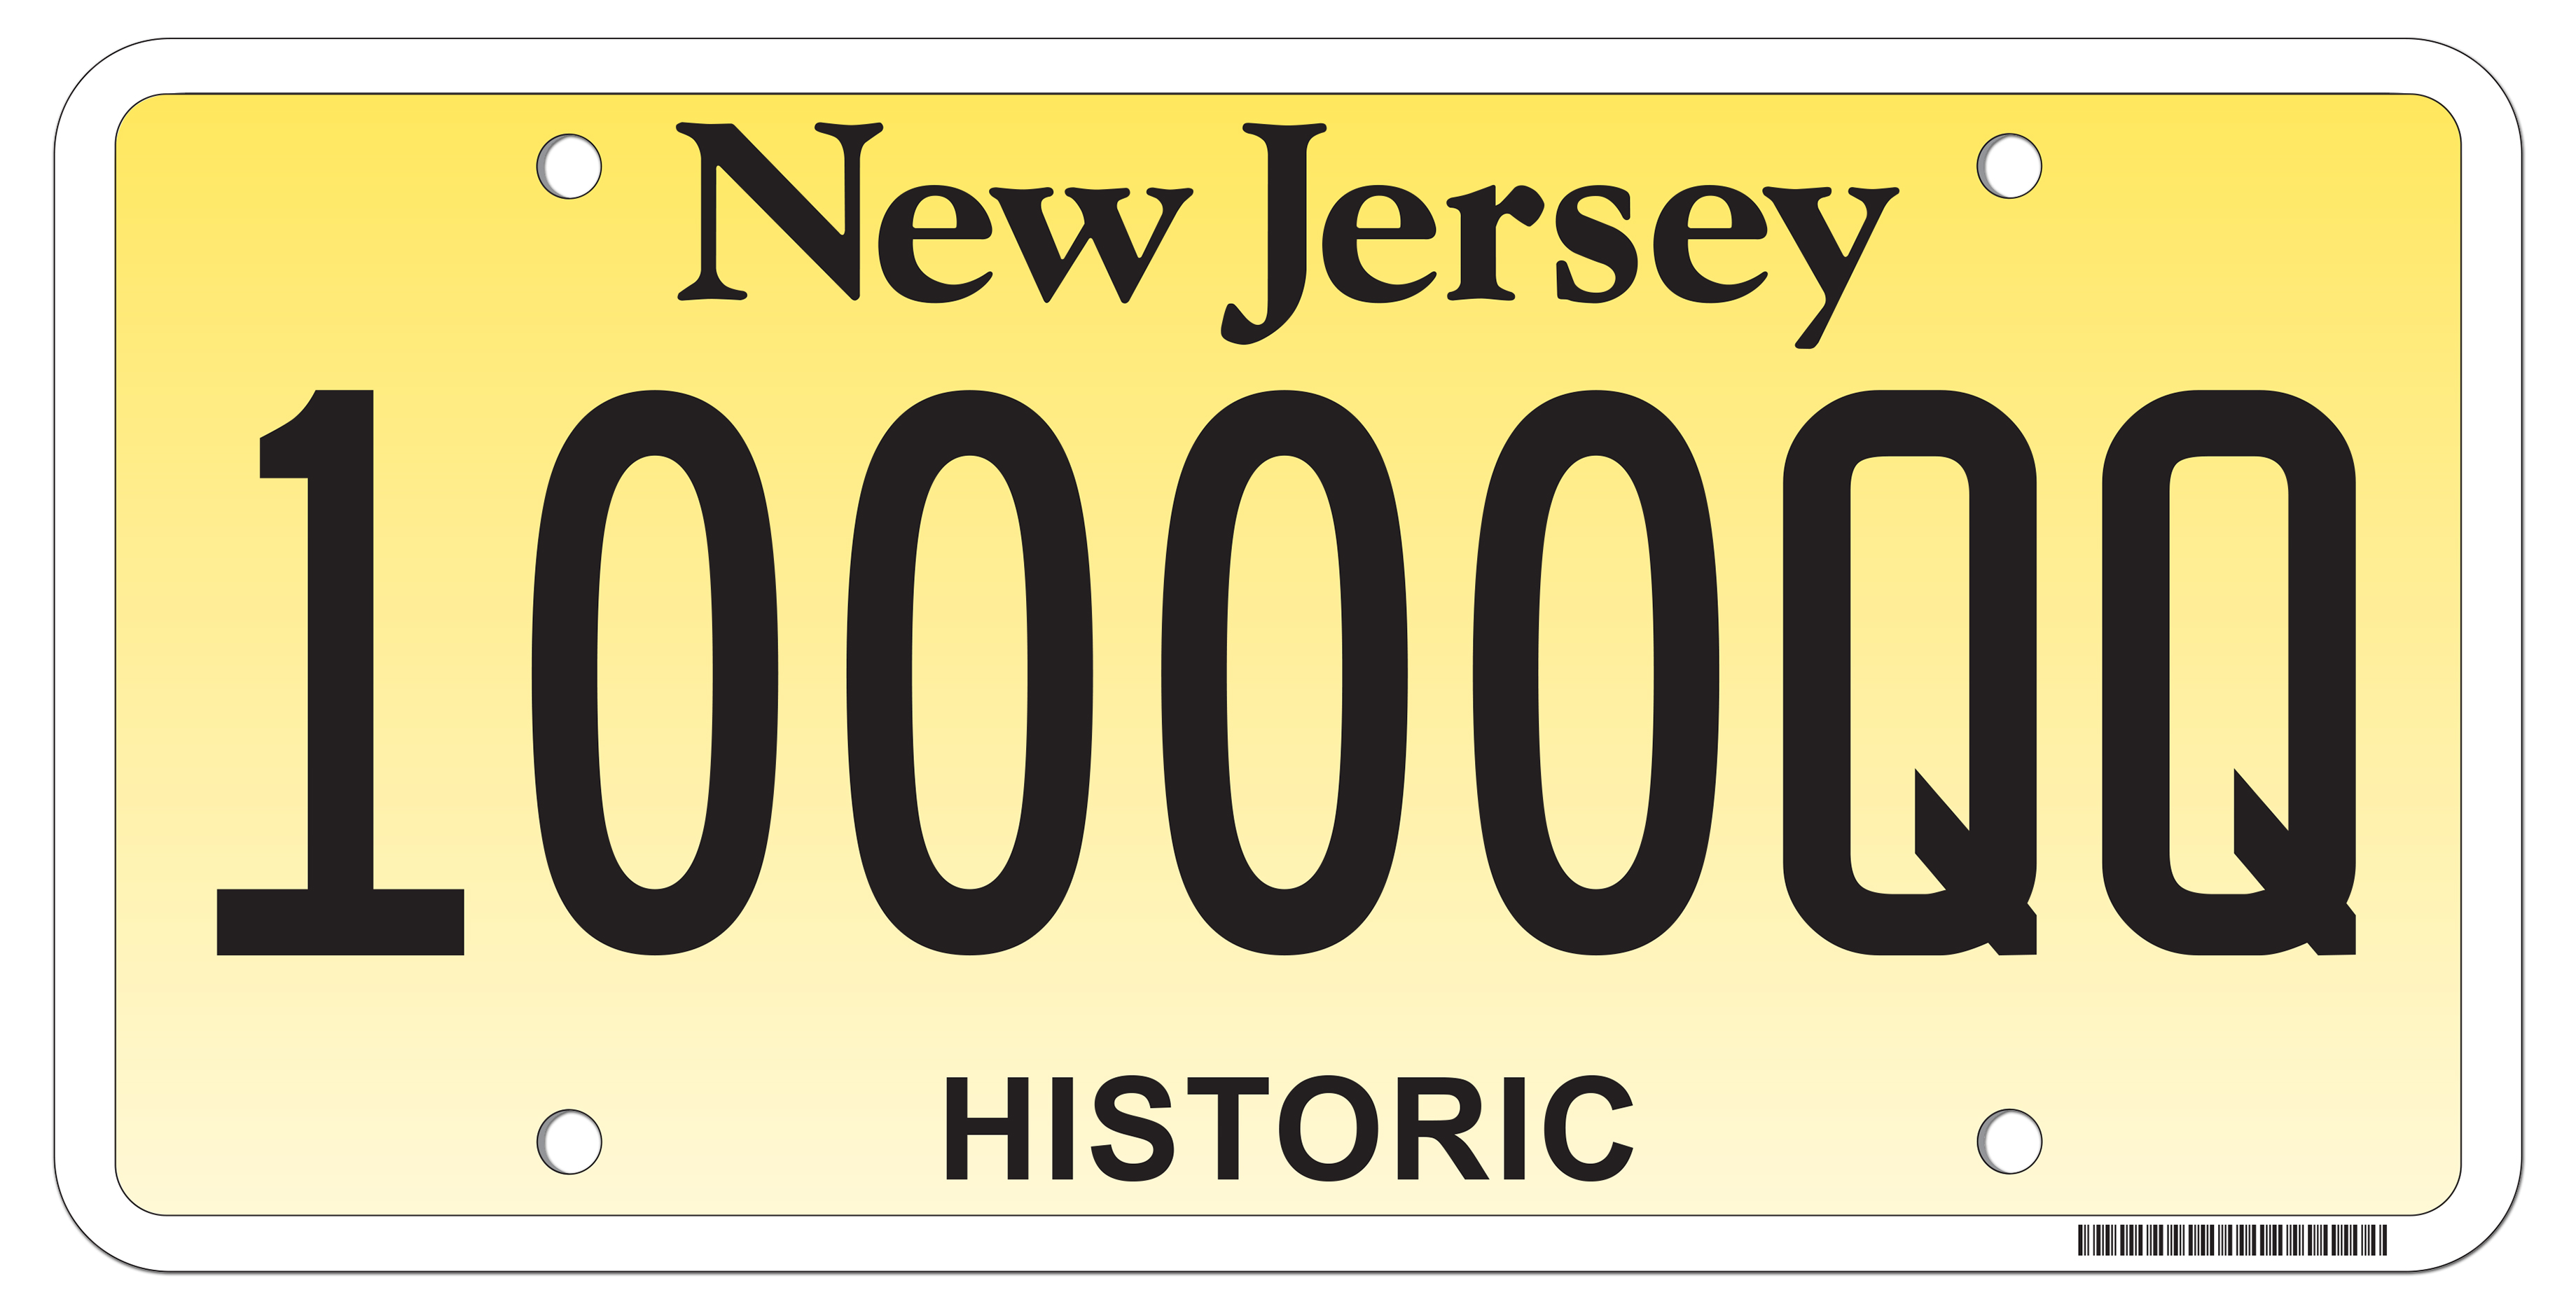 New Jersey Motor Vehicle Commission - Historic and Street Rod